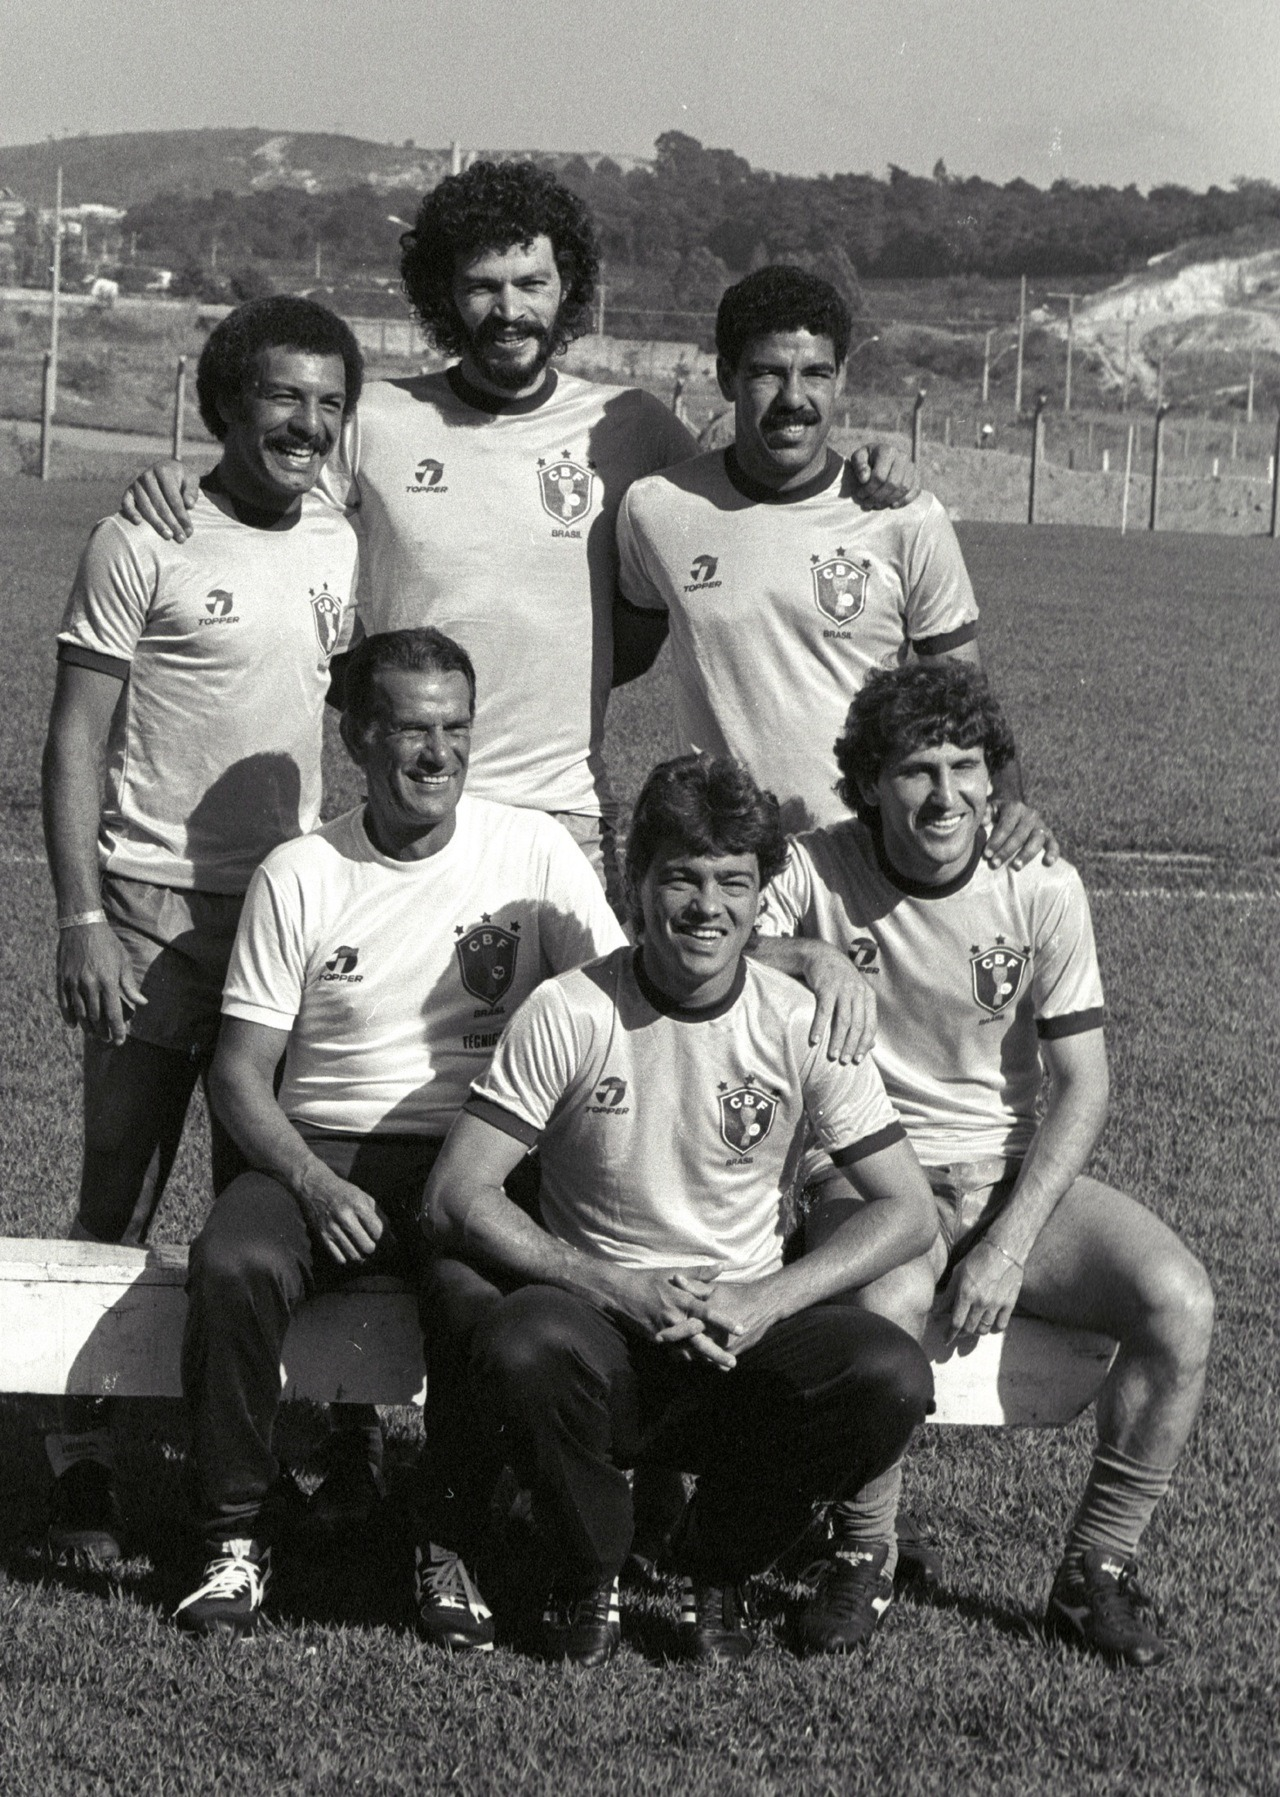 Brazil coach Telê Santana in 1985, with the Italy-based members of his squad: Junior, Socrates, Toninho Cerezo, Edinho and Zico.